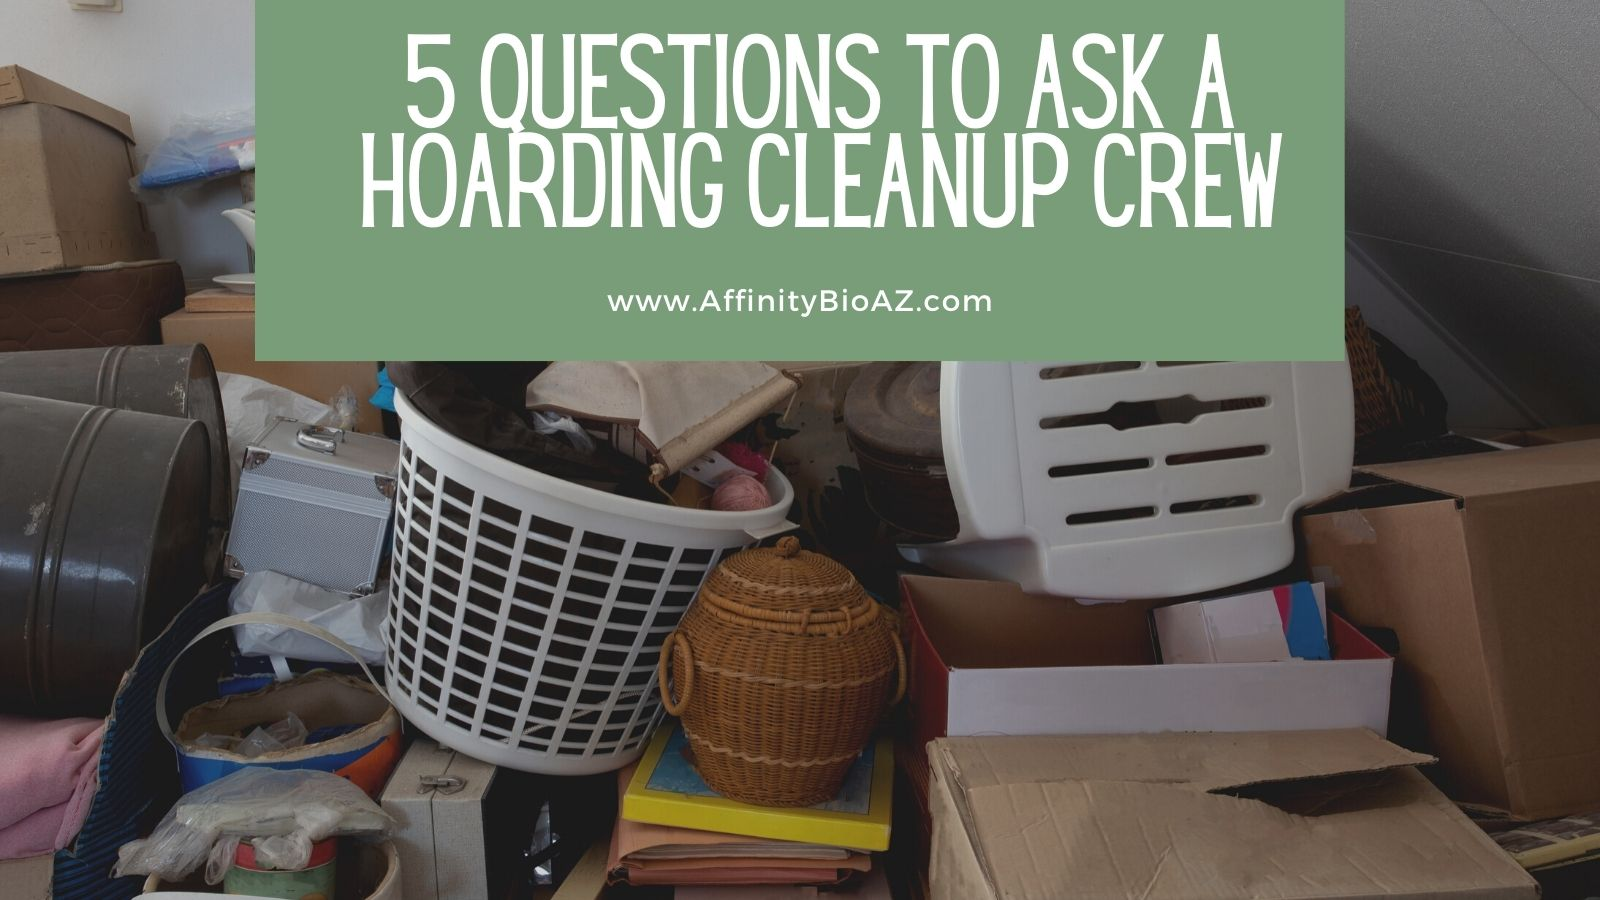 5 Questions to Ask a Hoarding Cleanup Crew